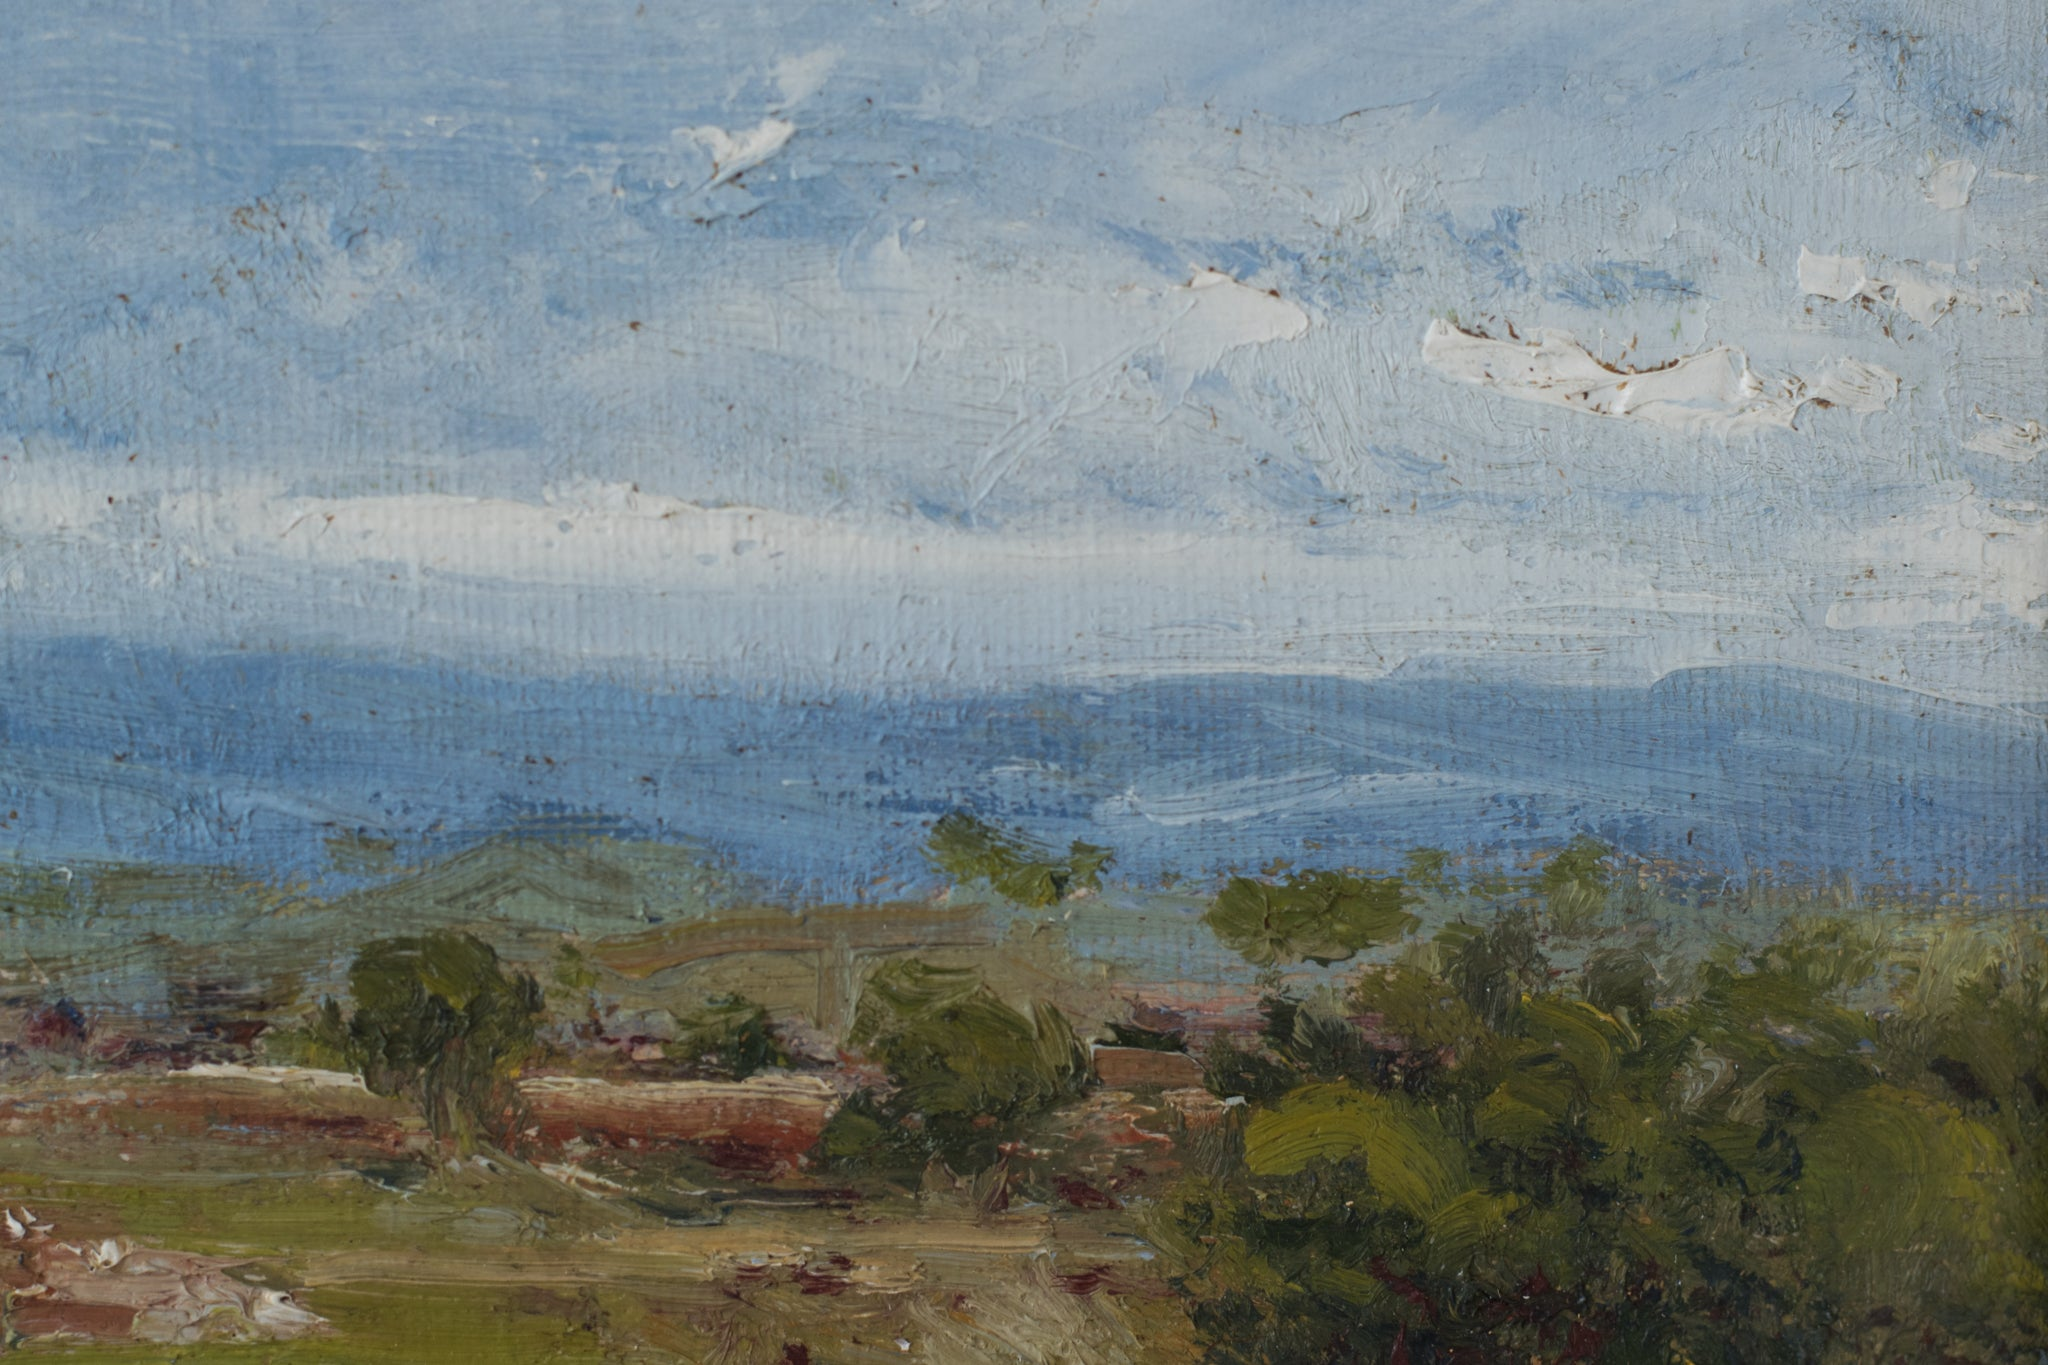 Landscape with a View of Mountains